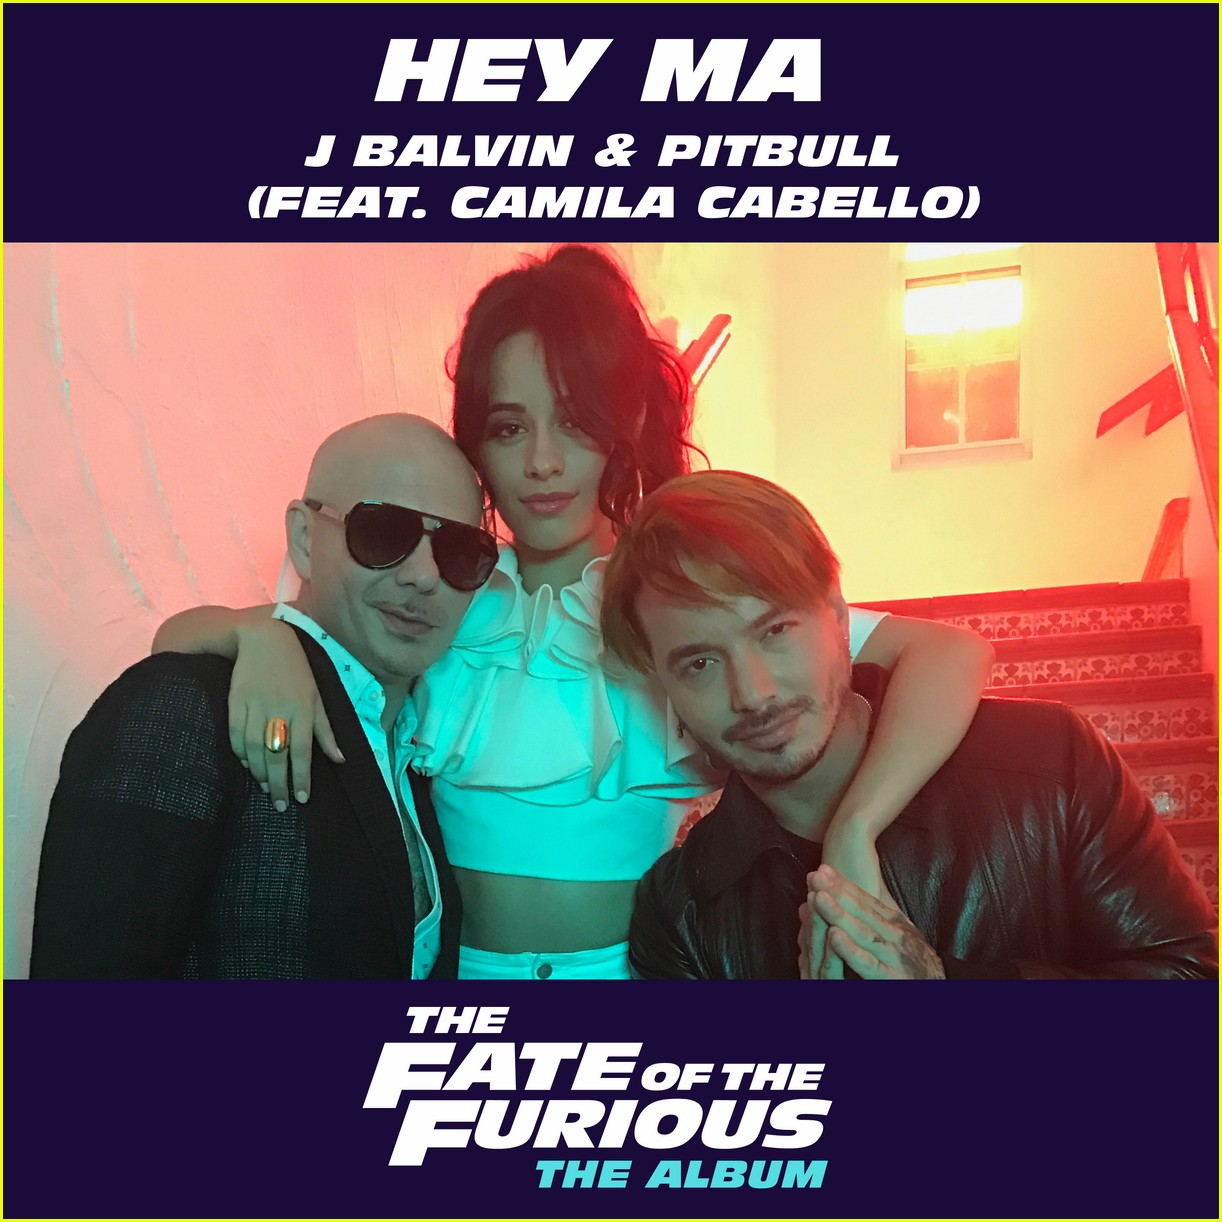 watch pitbull camila cabello and j balvin in hey ma english vesion music video 02